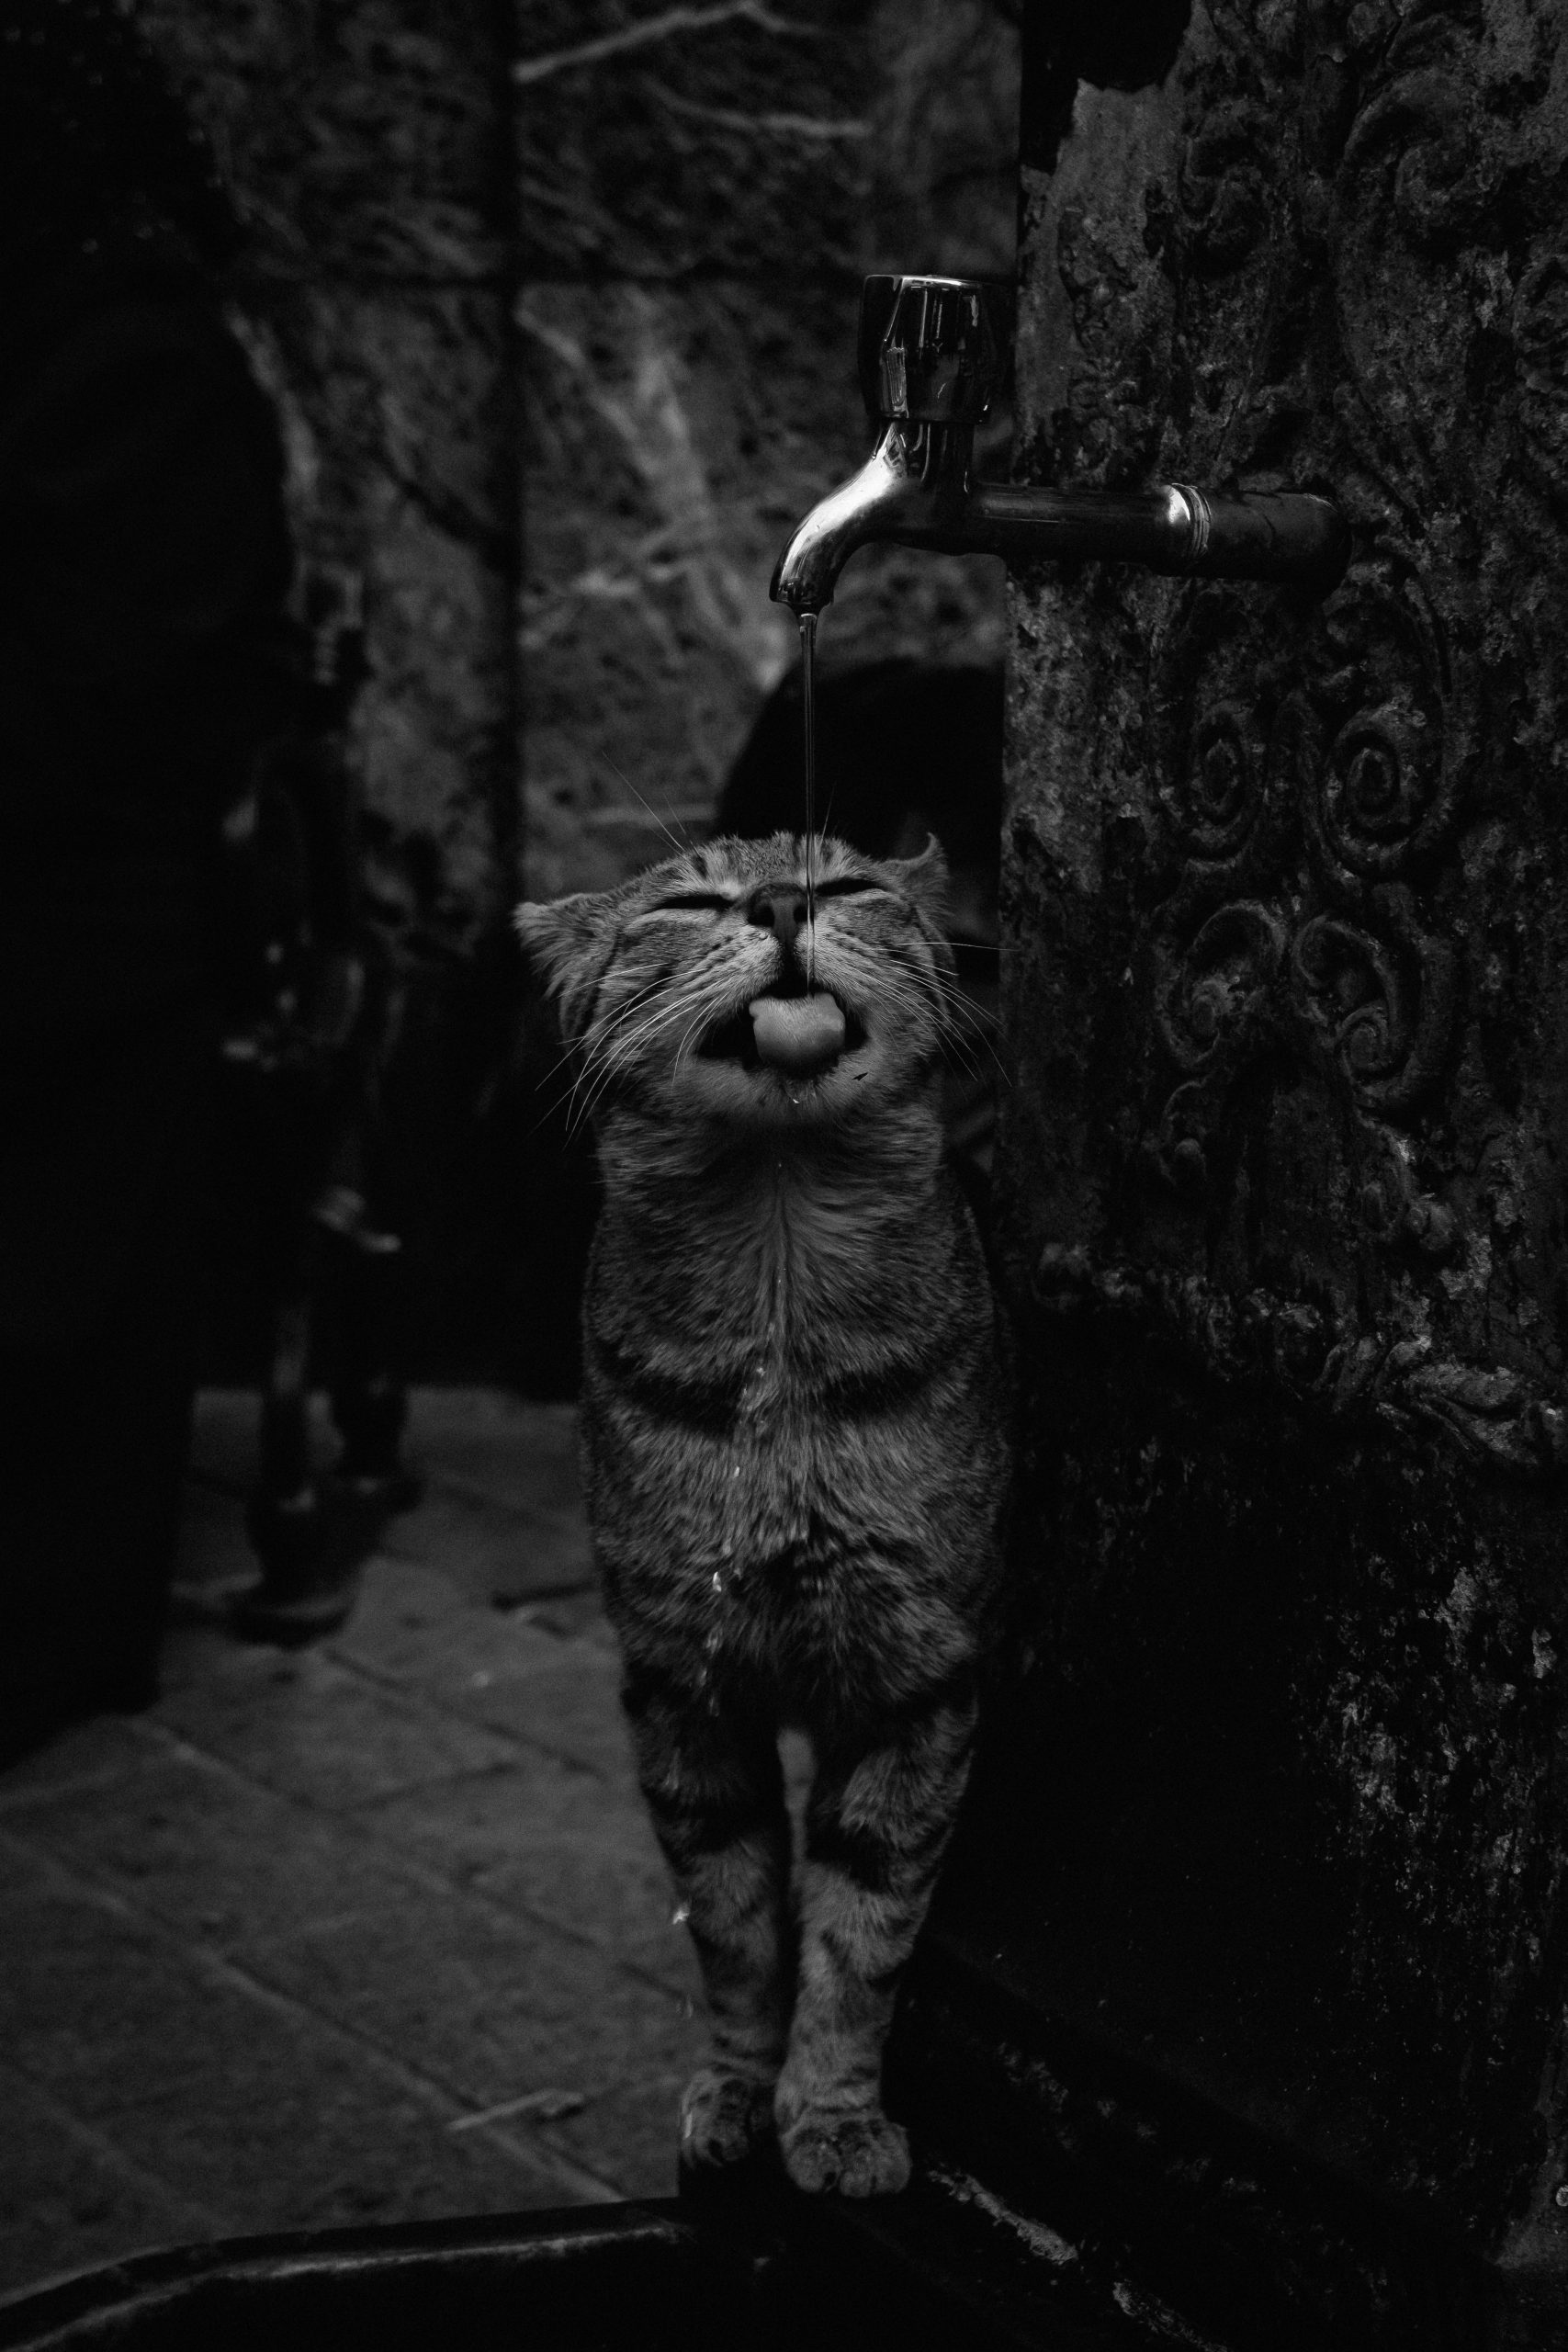 Lorna Faulkes - Feline Thirsty - Photo print - a4 / a3 - £18.50 / £37.50